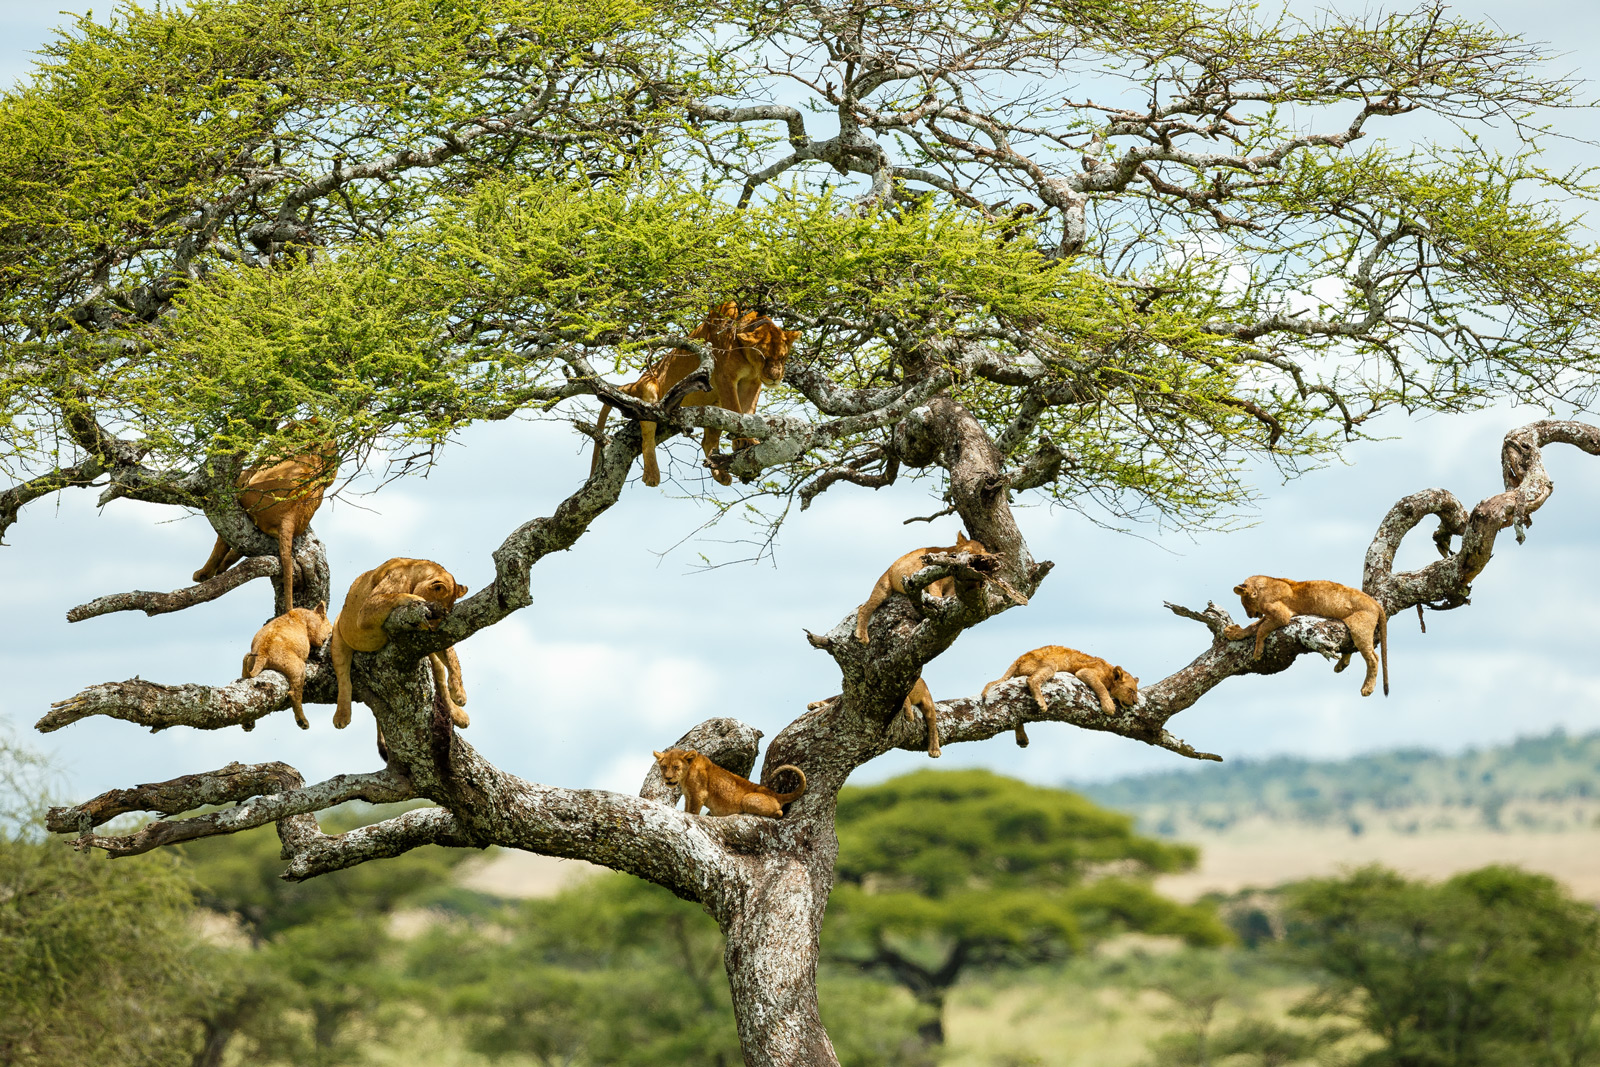 Lions sleeping in a tree in Tanzania